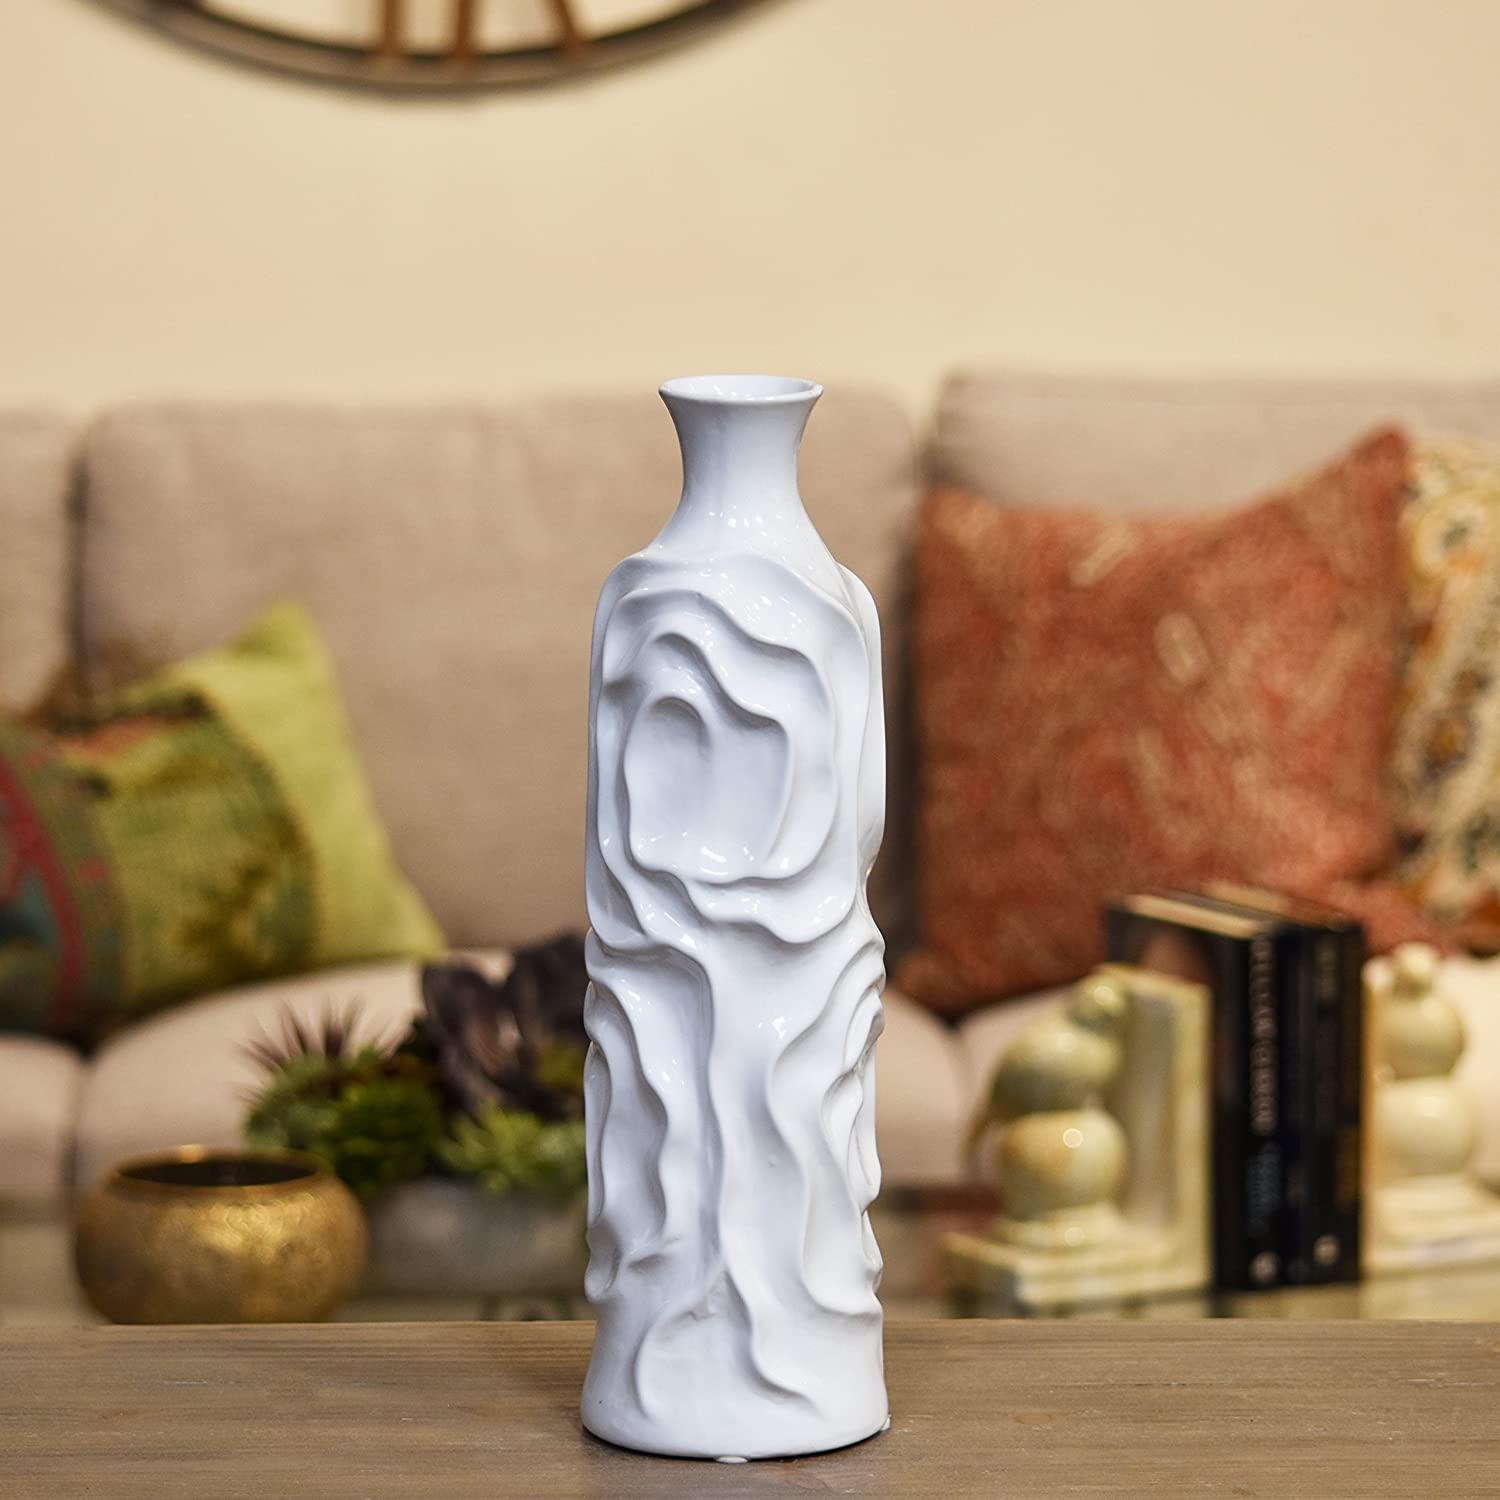 White Urban Trends Ceramic Round Cylindrical Vase with Neck and Wrinkled Sides in MD Gloss Finish